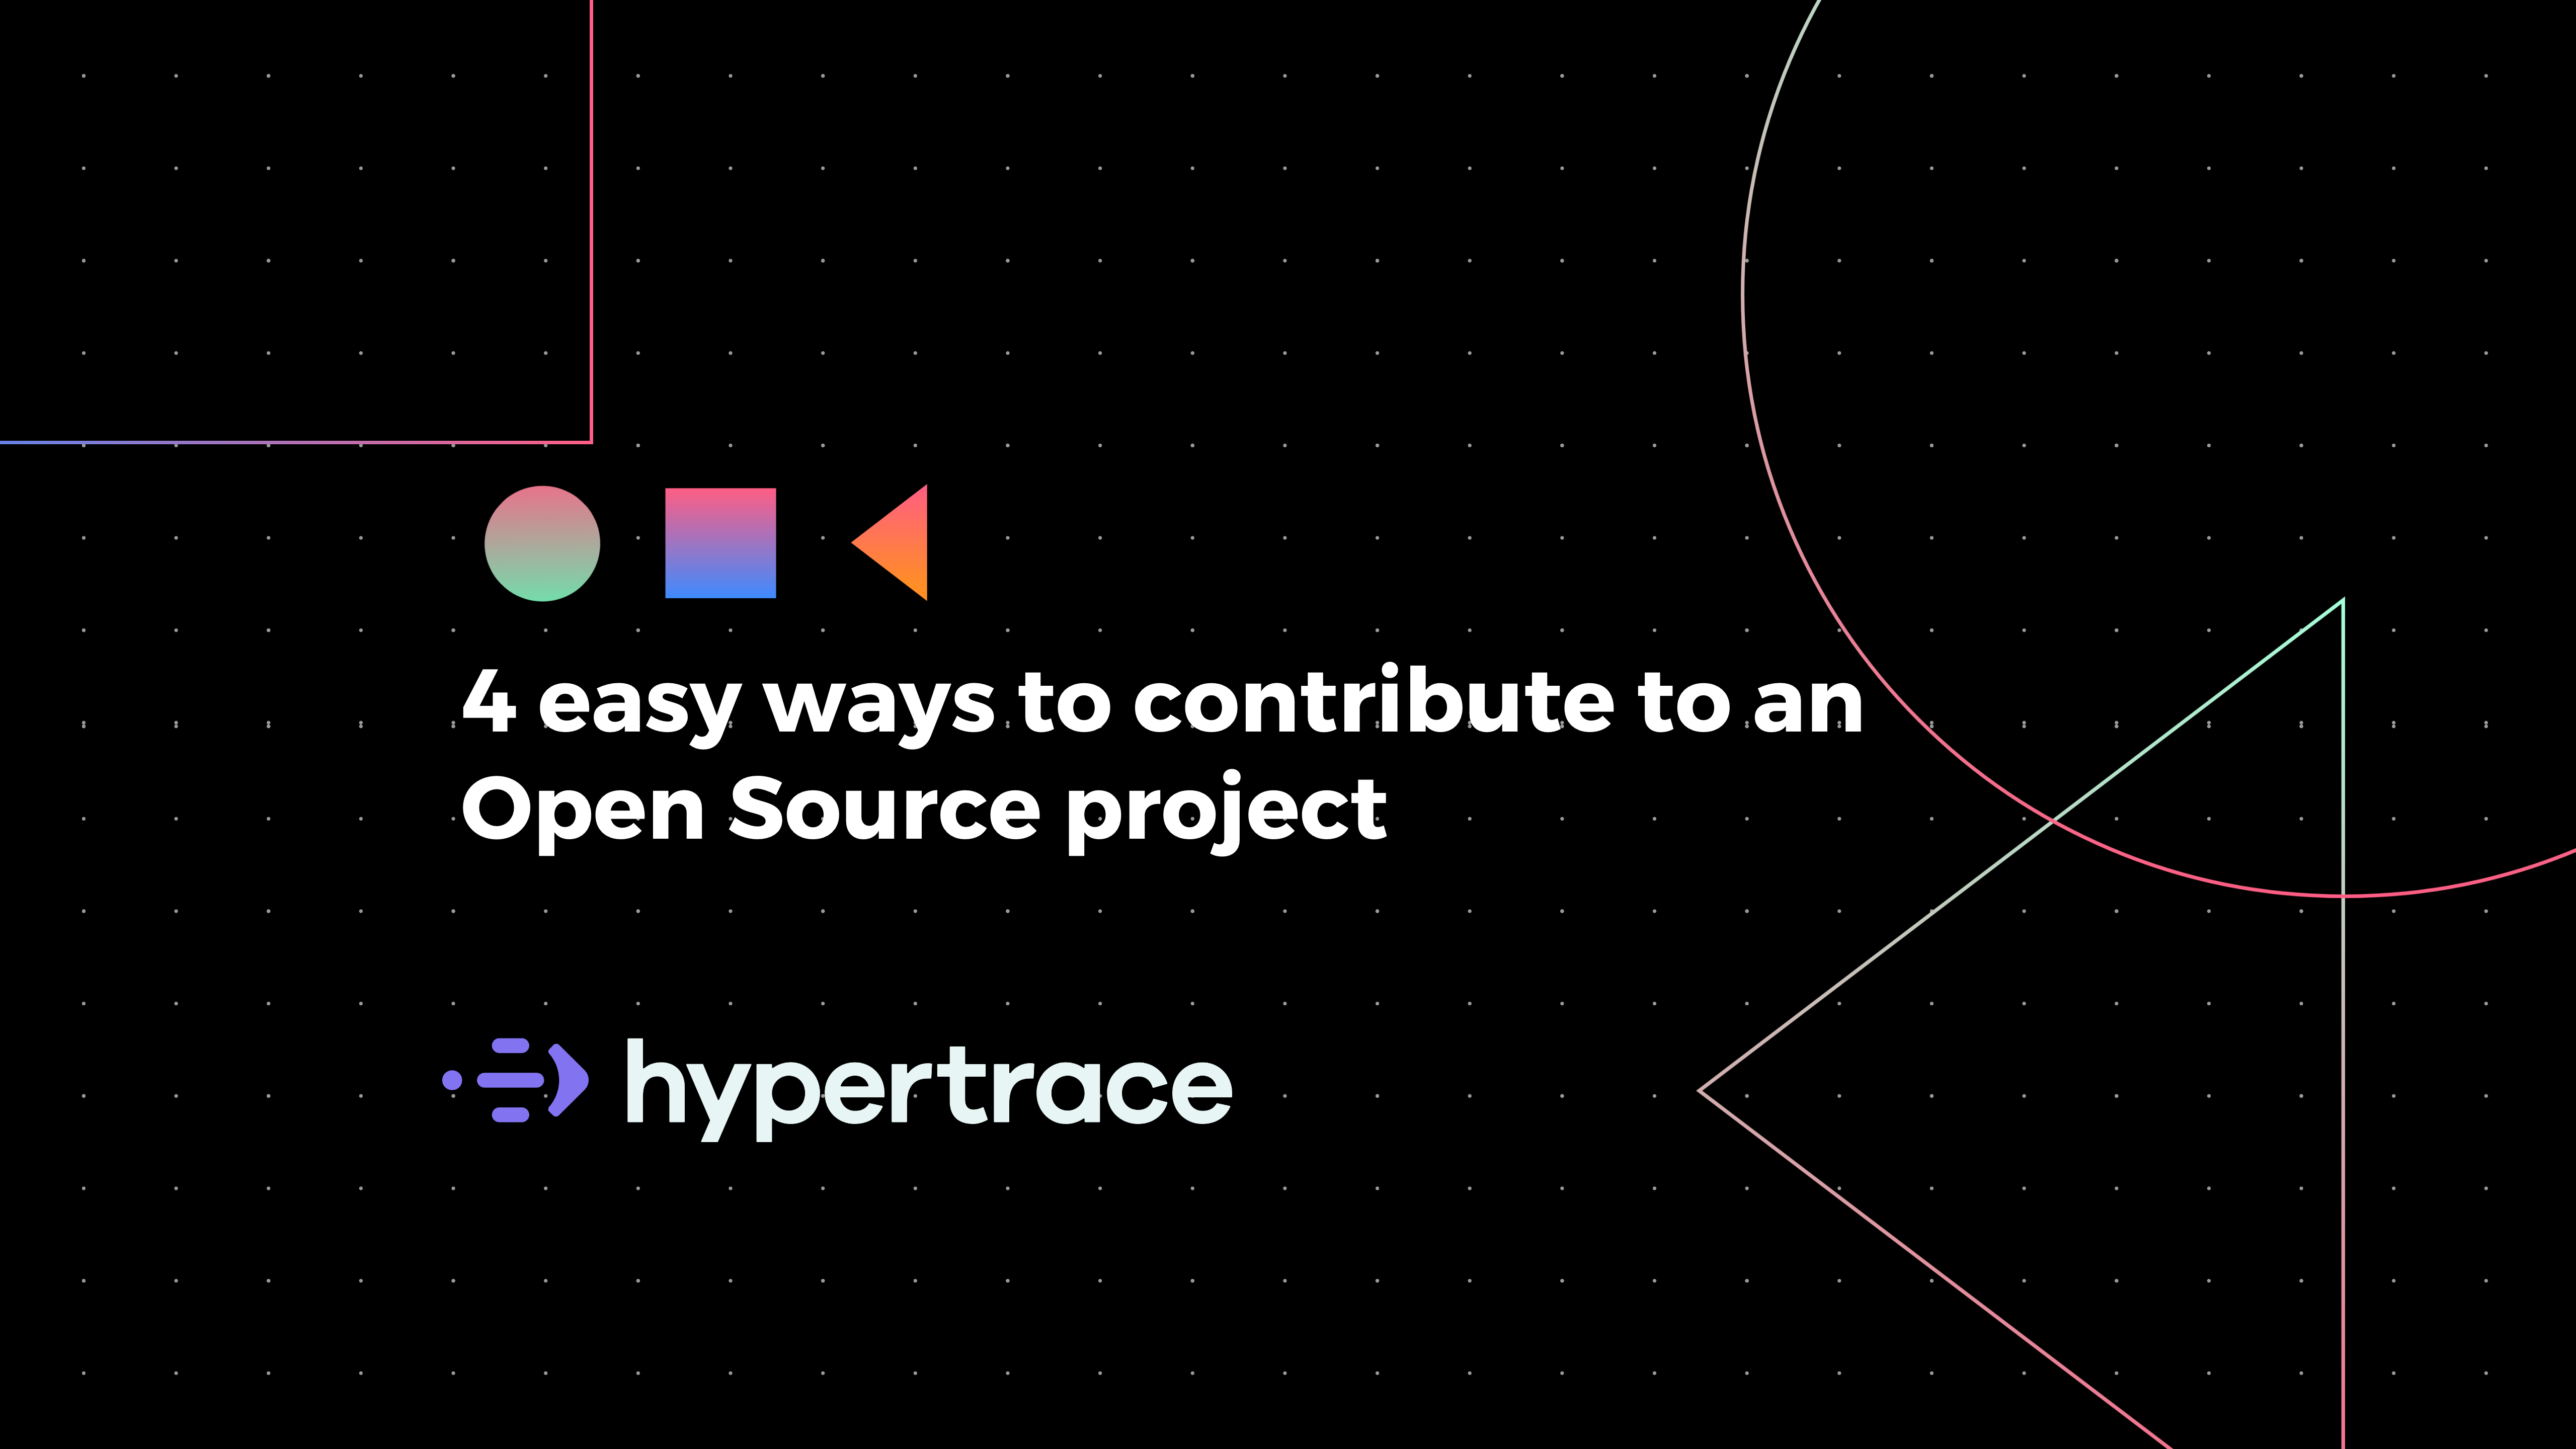 4 Easy Ways to Contribute to an Open Source Project